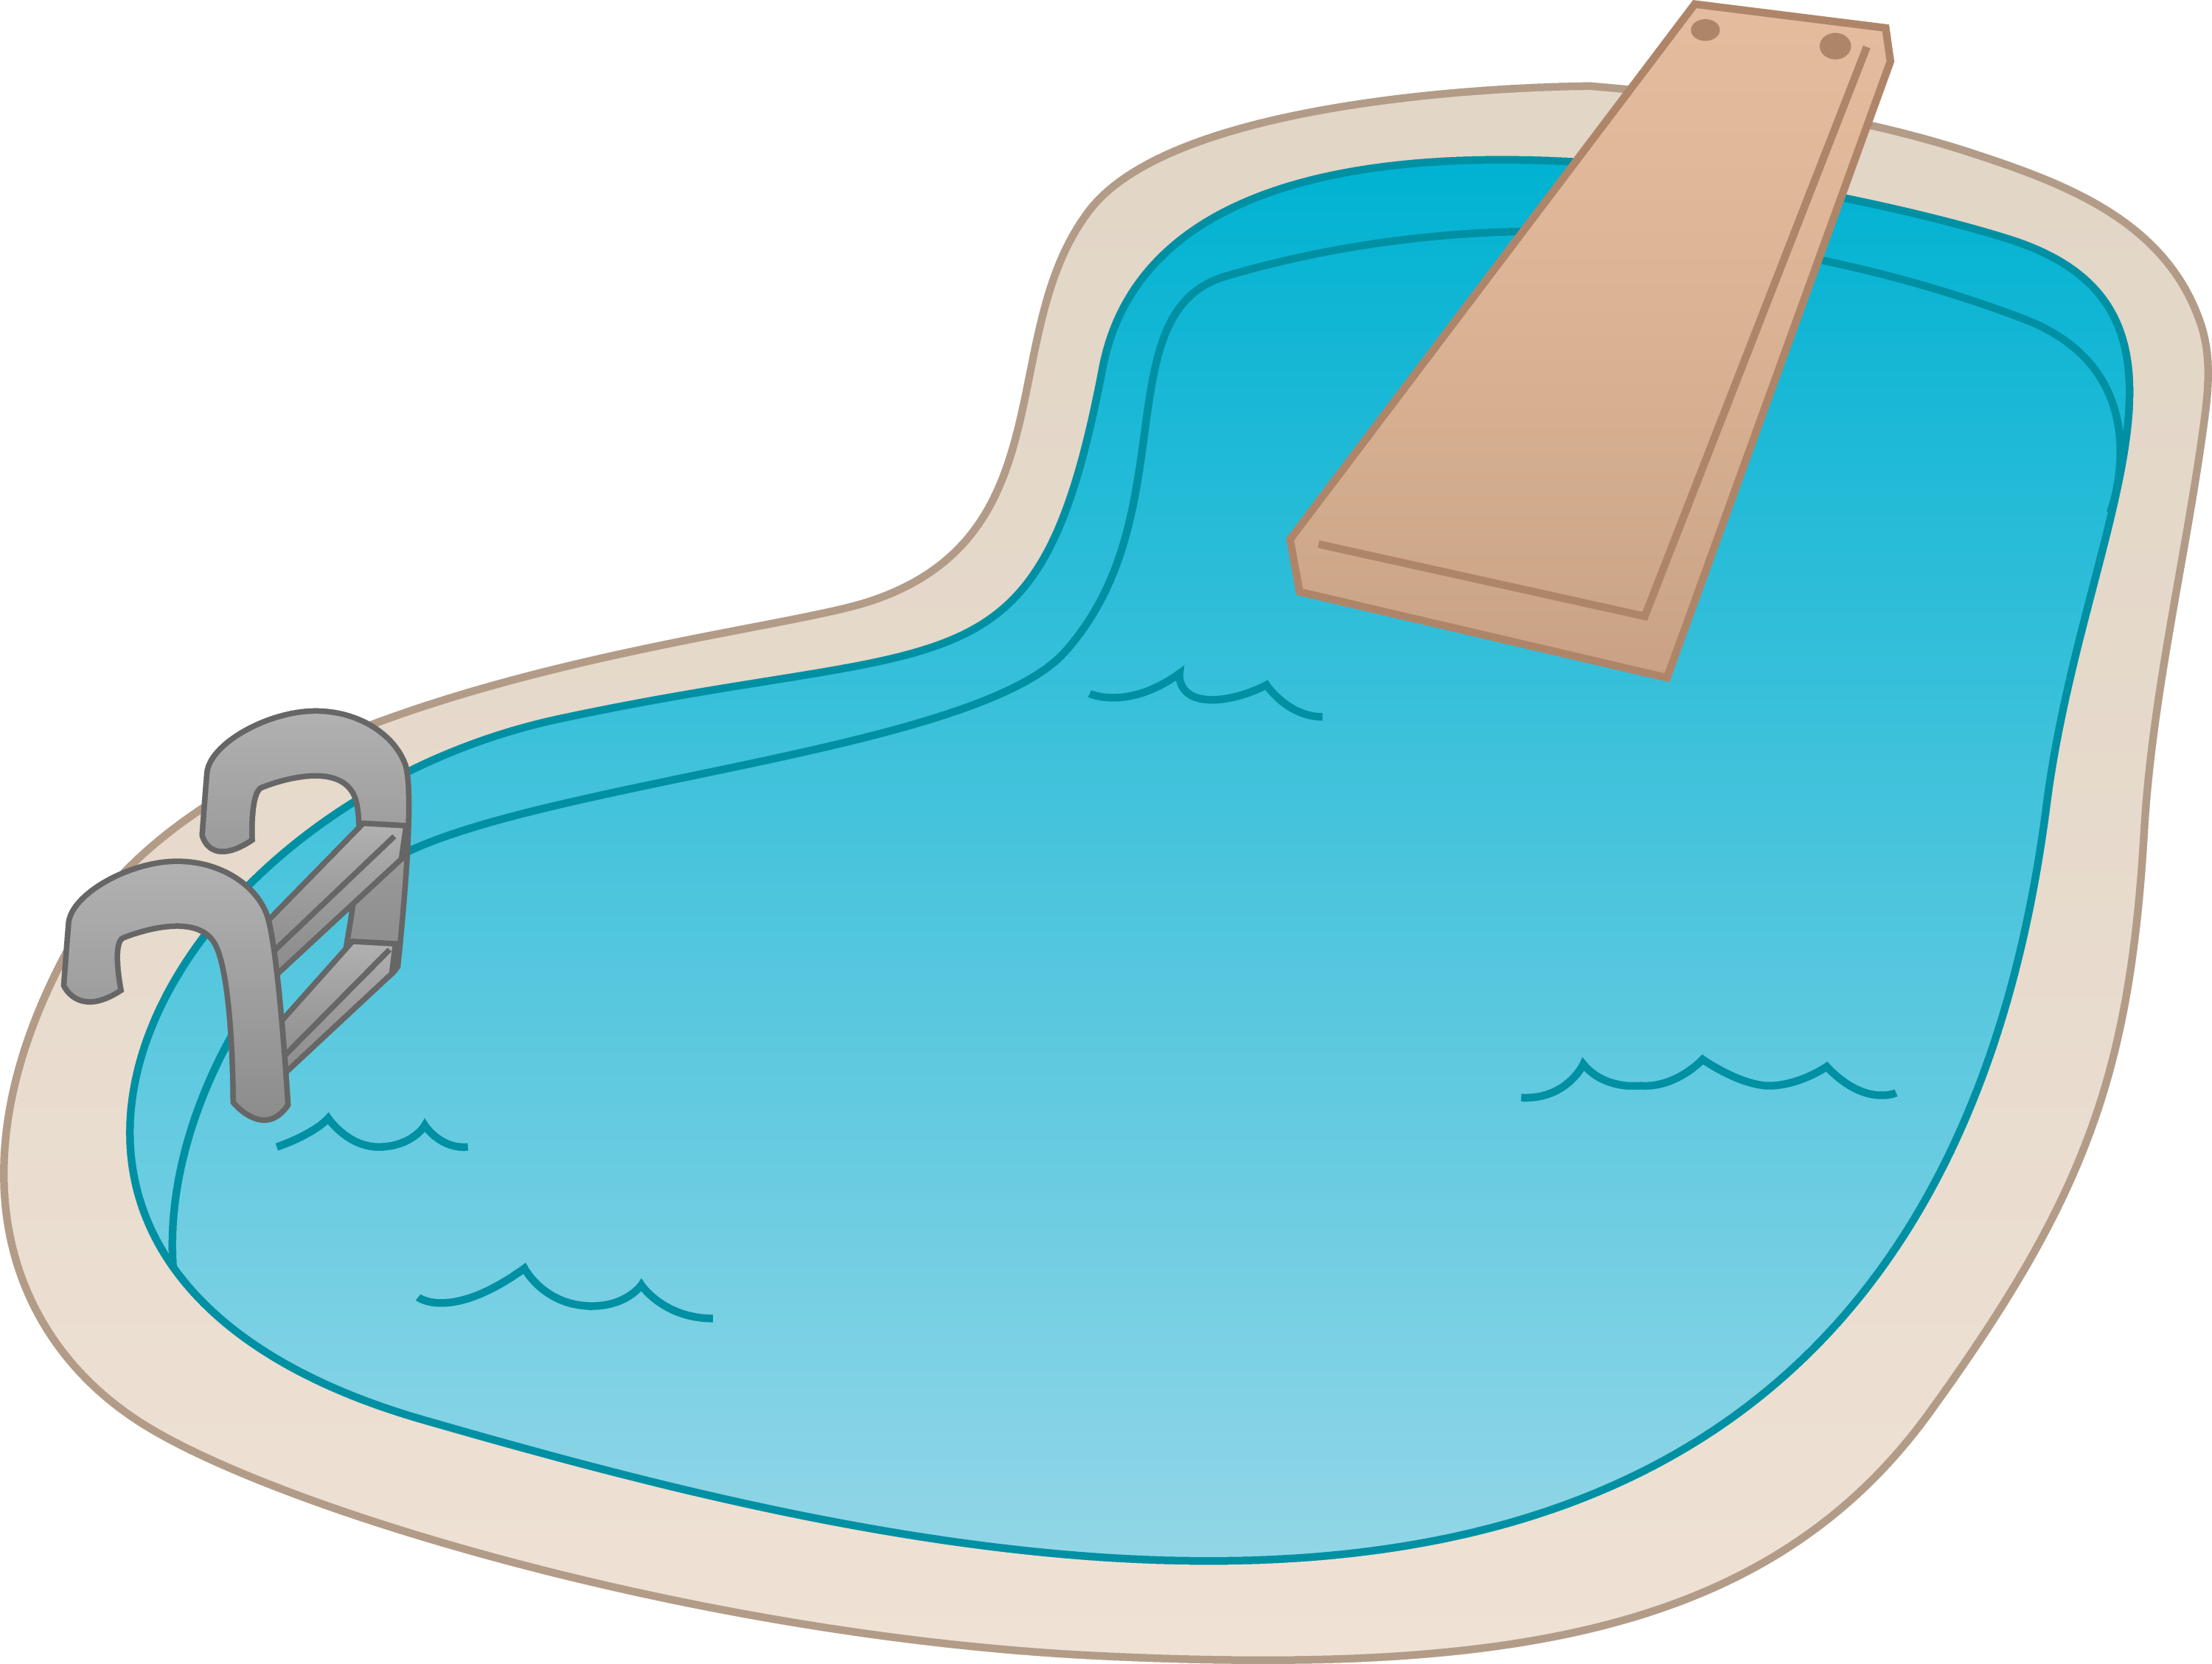 Swimming Pool Clip Art : Swimming pool with diving board free clip art